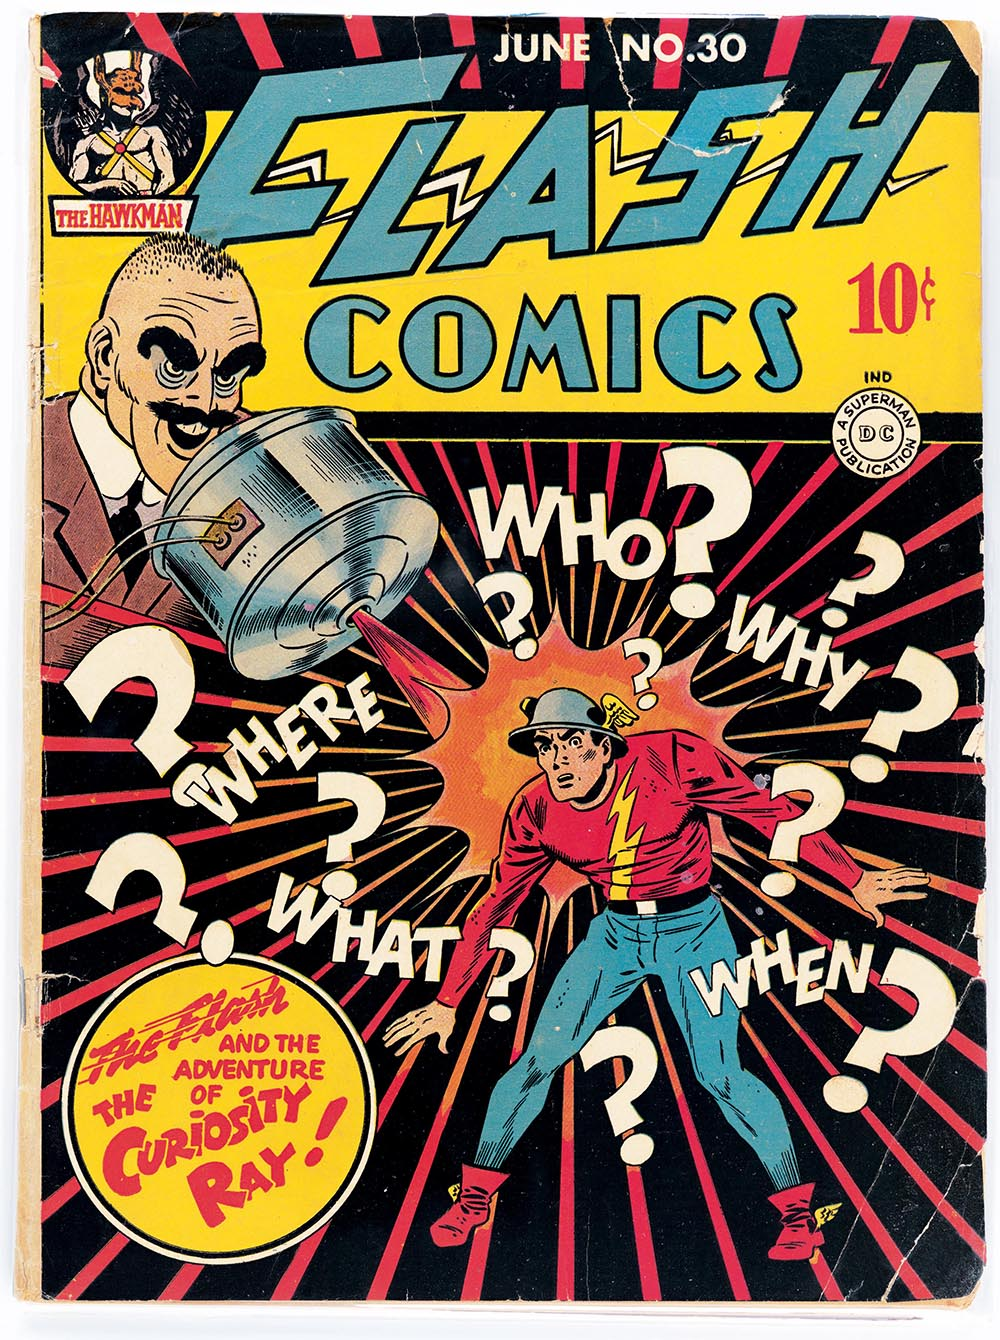 Flash Comics No. 30 cover art by EE Hibbard, June 1942